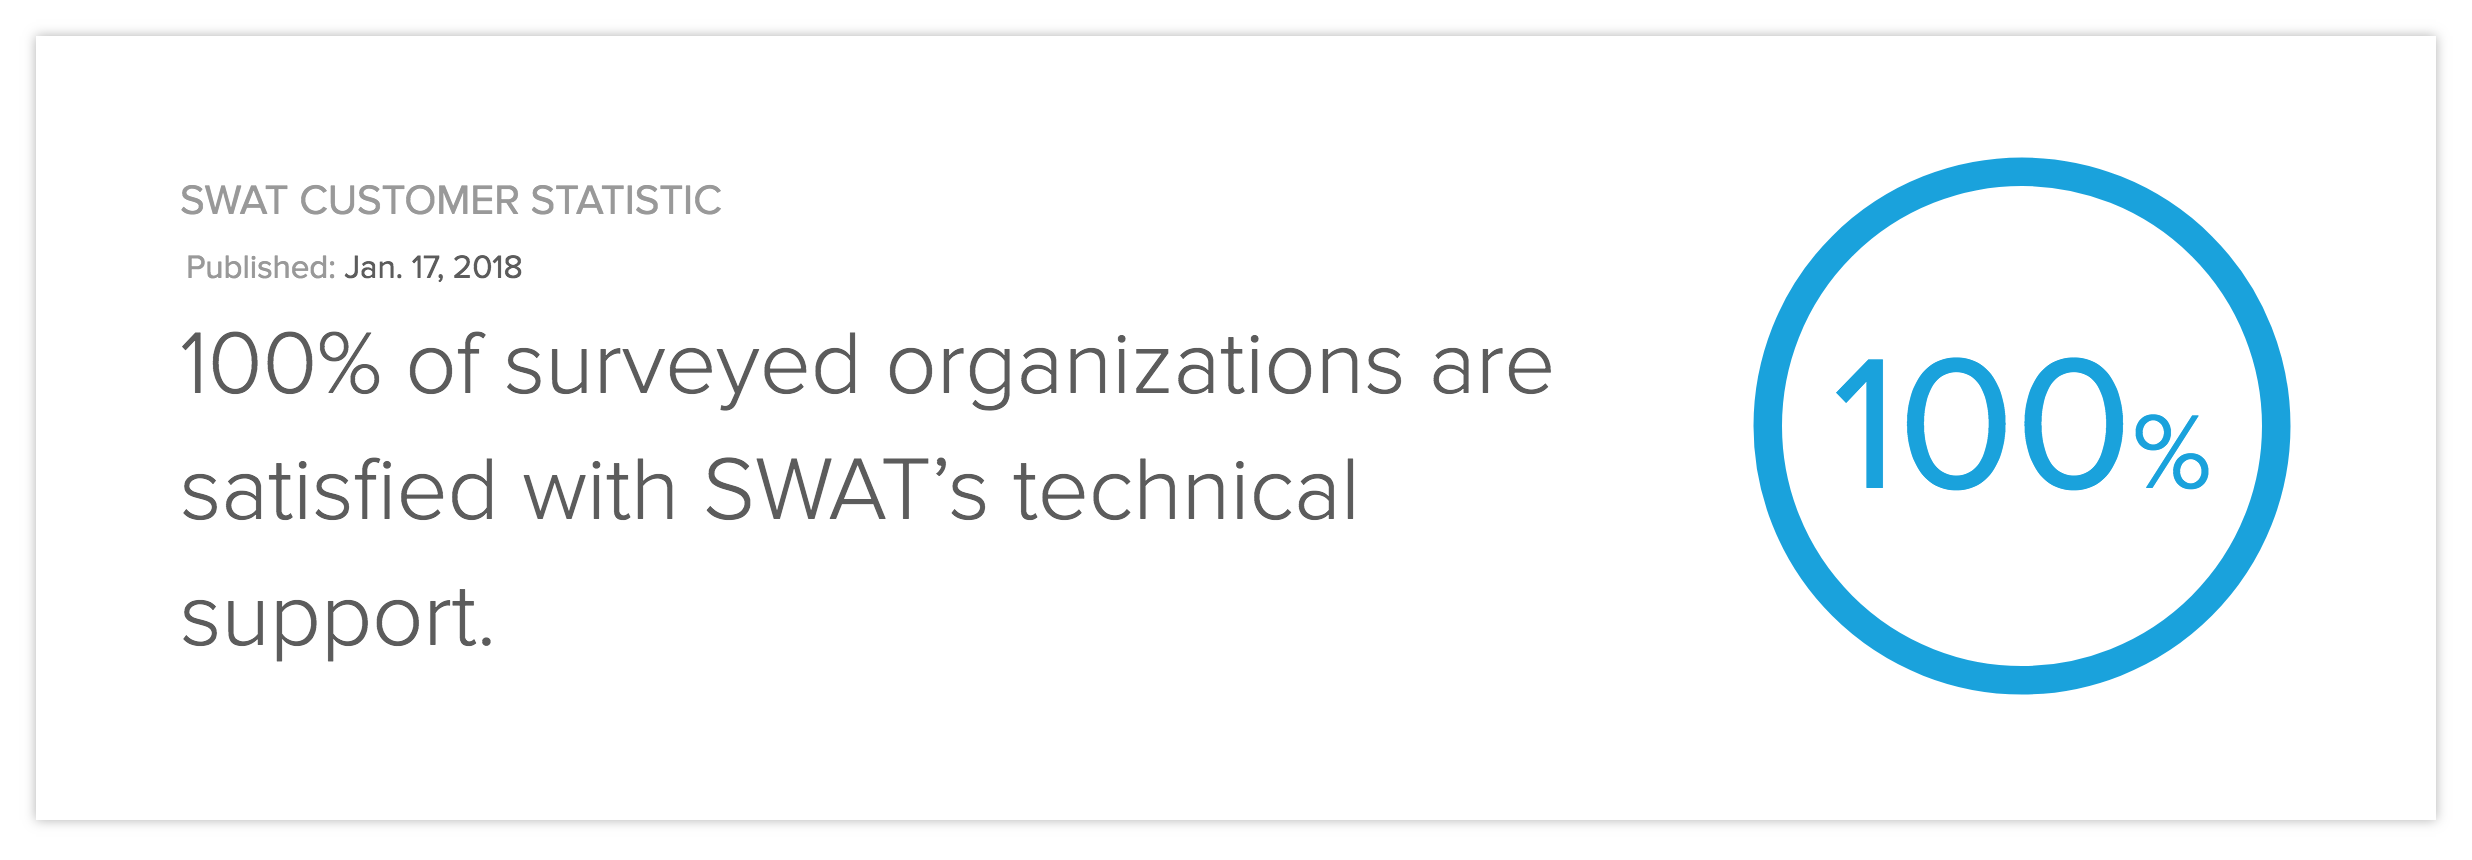 100% of surveyed organizations are satisfied with SWAT's technical support